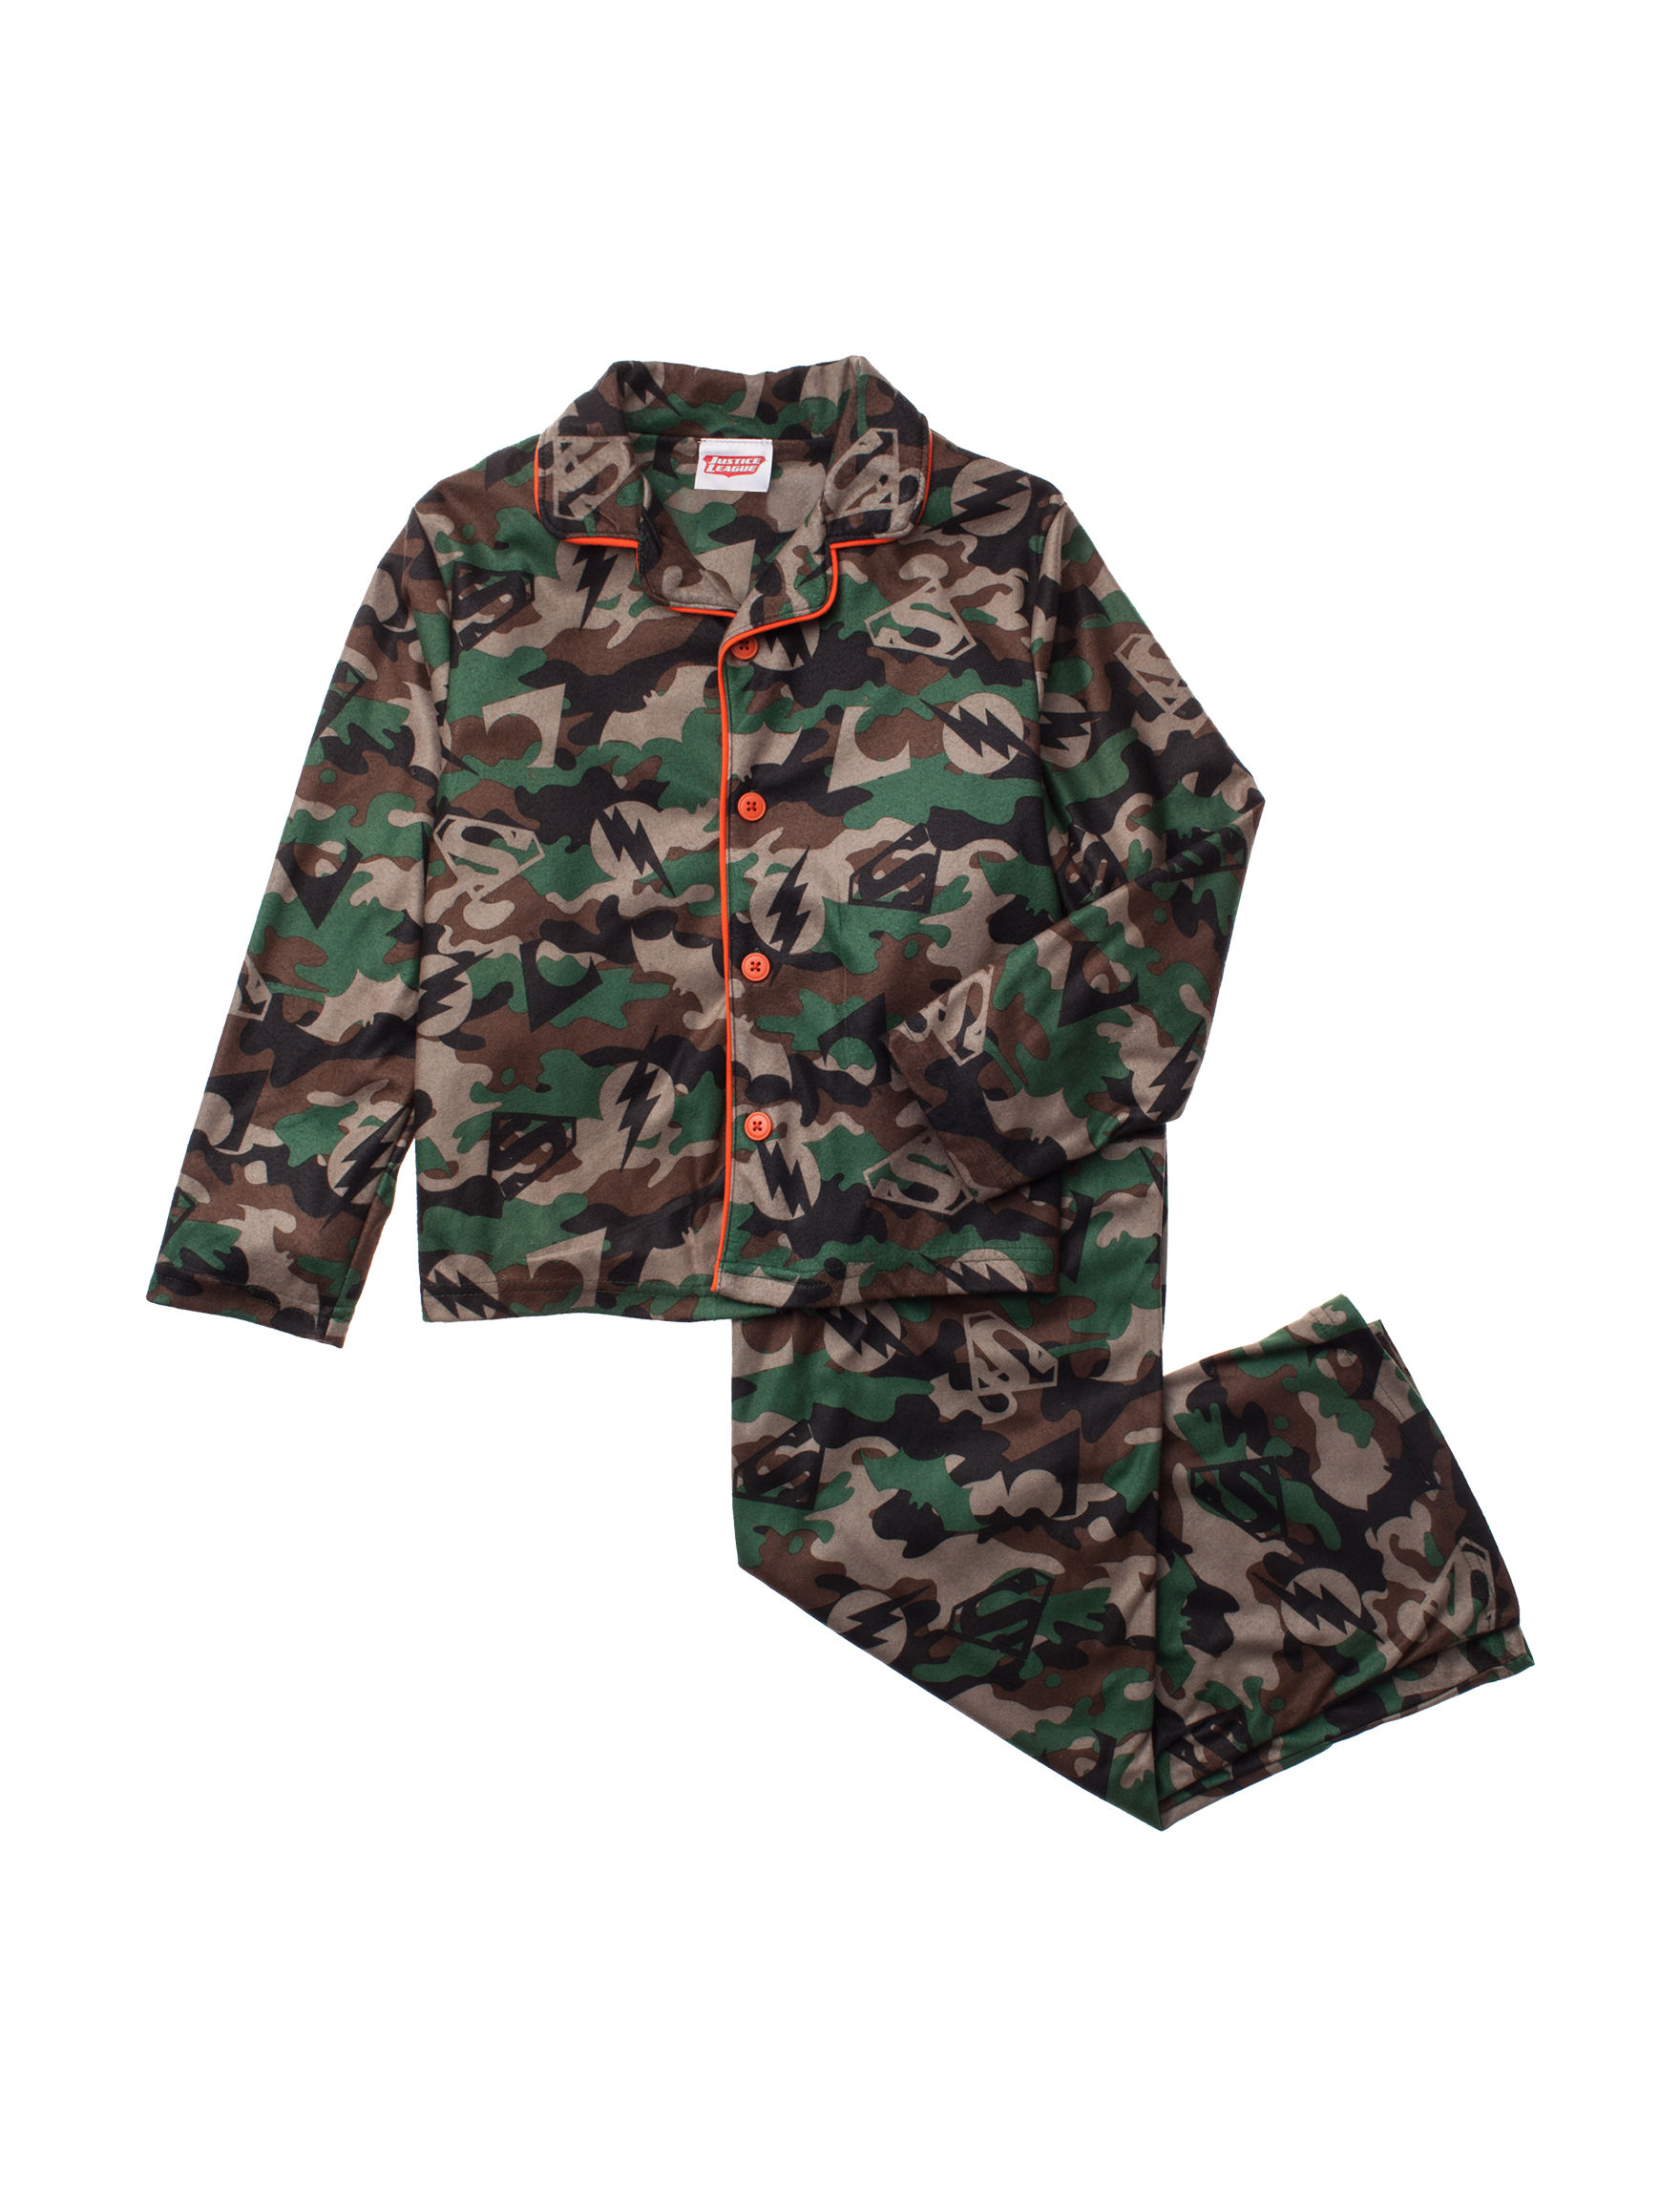 Licensed Green Camo Pajama Sets